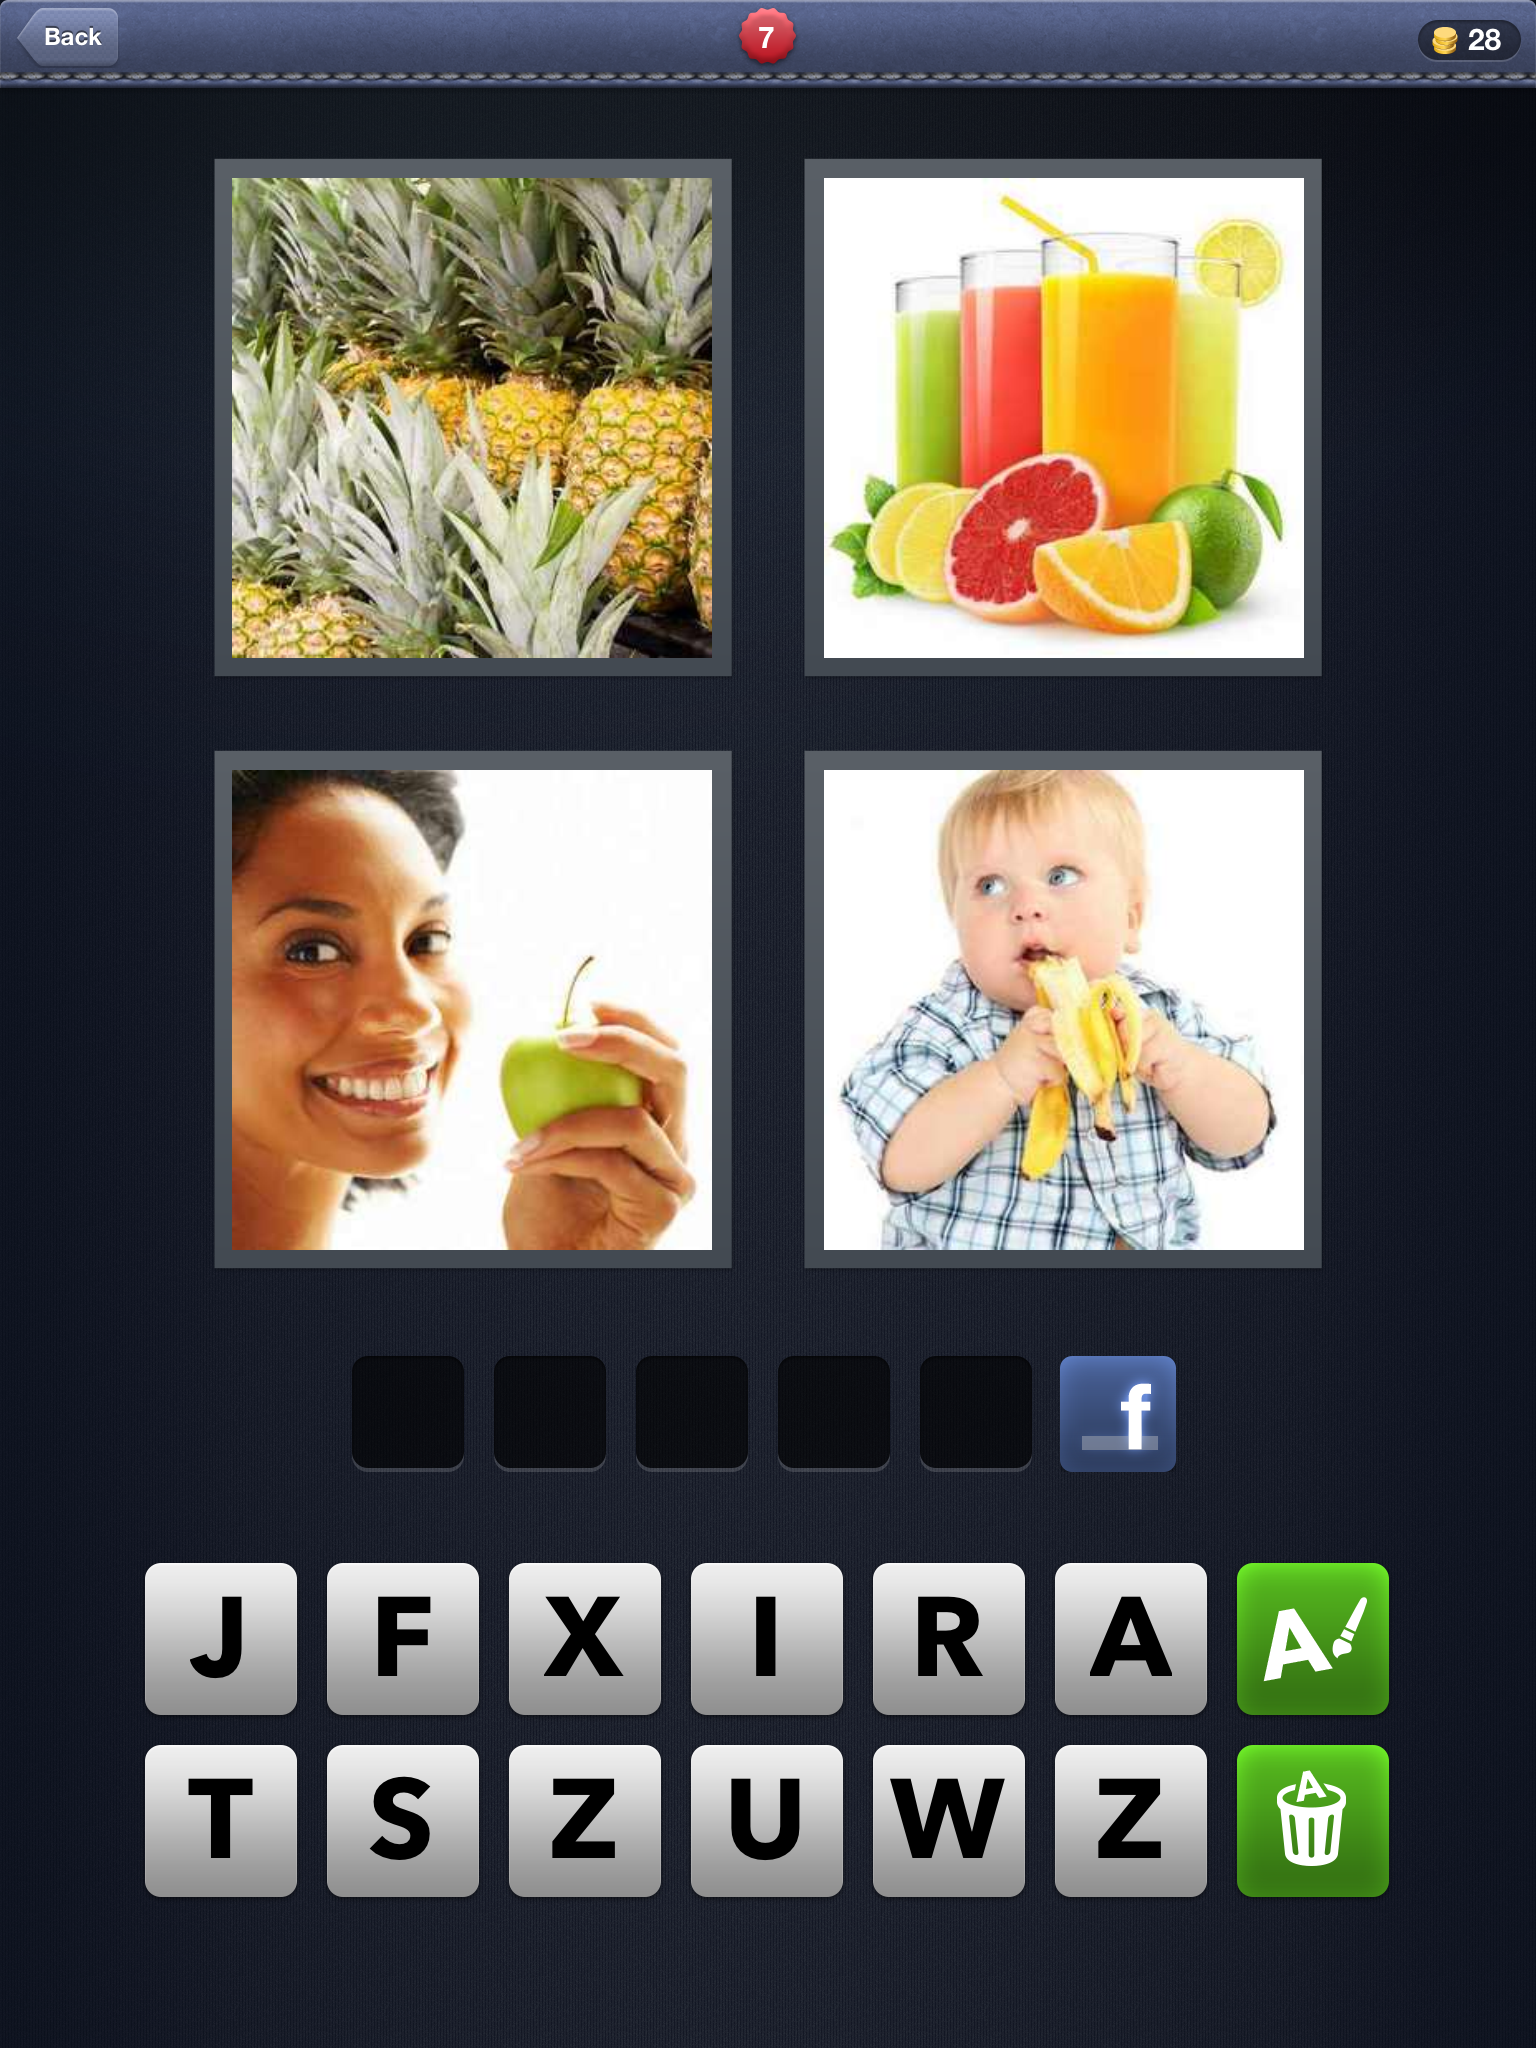 pics 1 word answers what s the word answers4